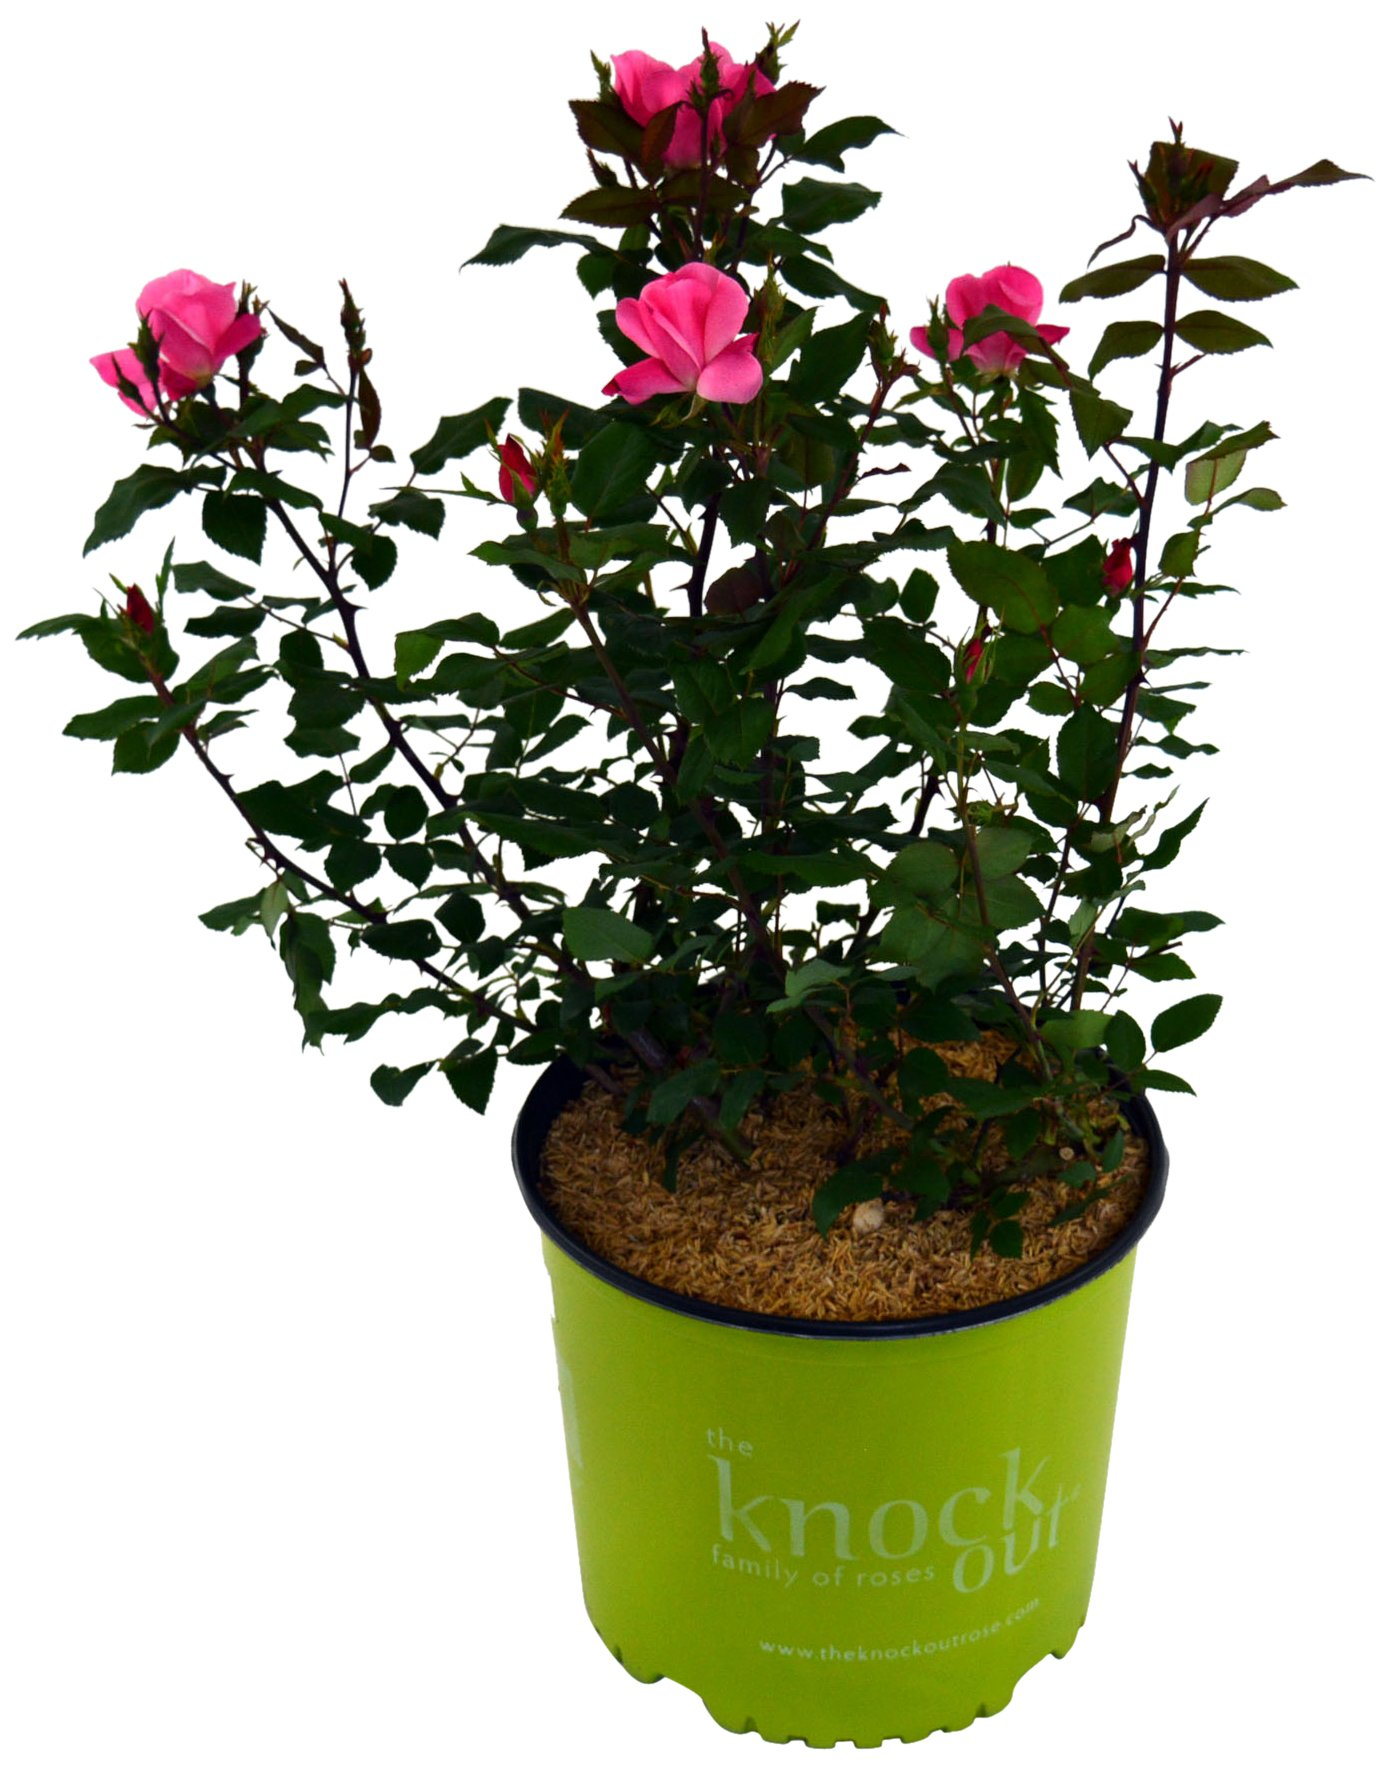 Knock Out Roses - Rosa Knock Out Pink (Rose) Rose, pink flowers, #2 - Size Container by Green Promise Farms (Image #1)